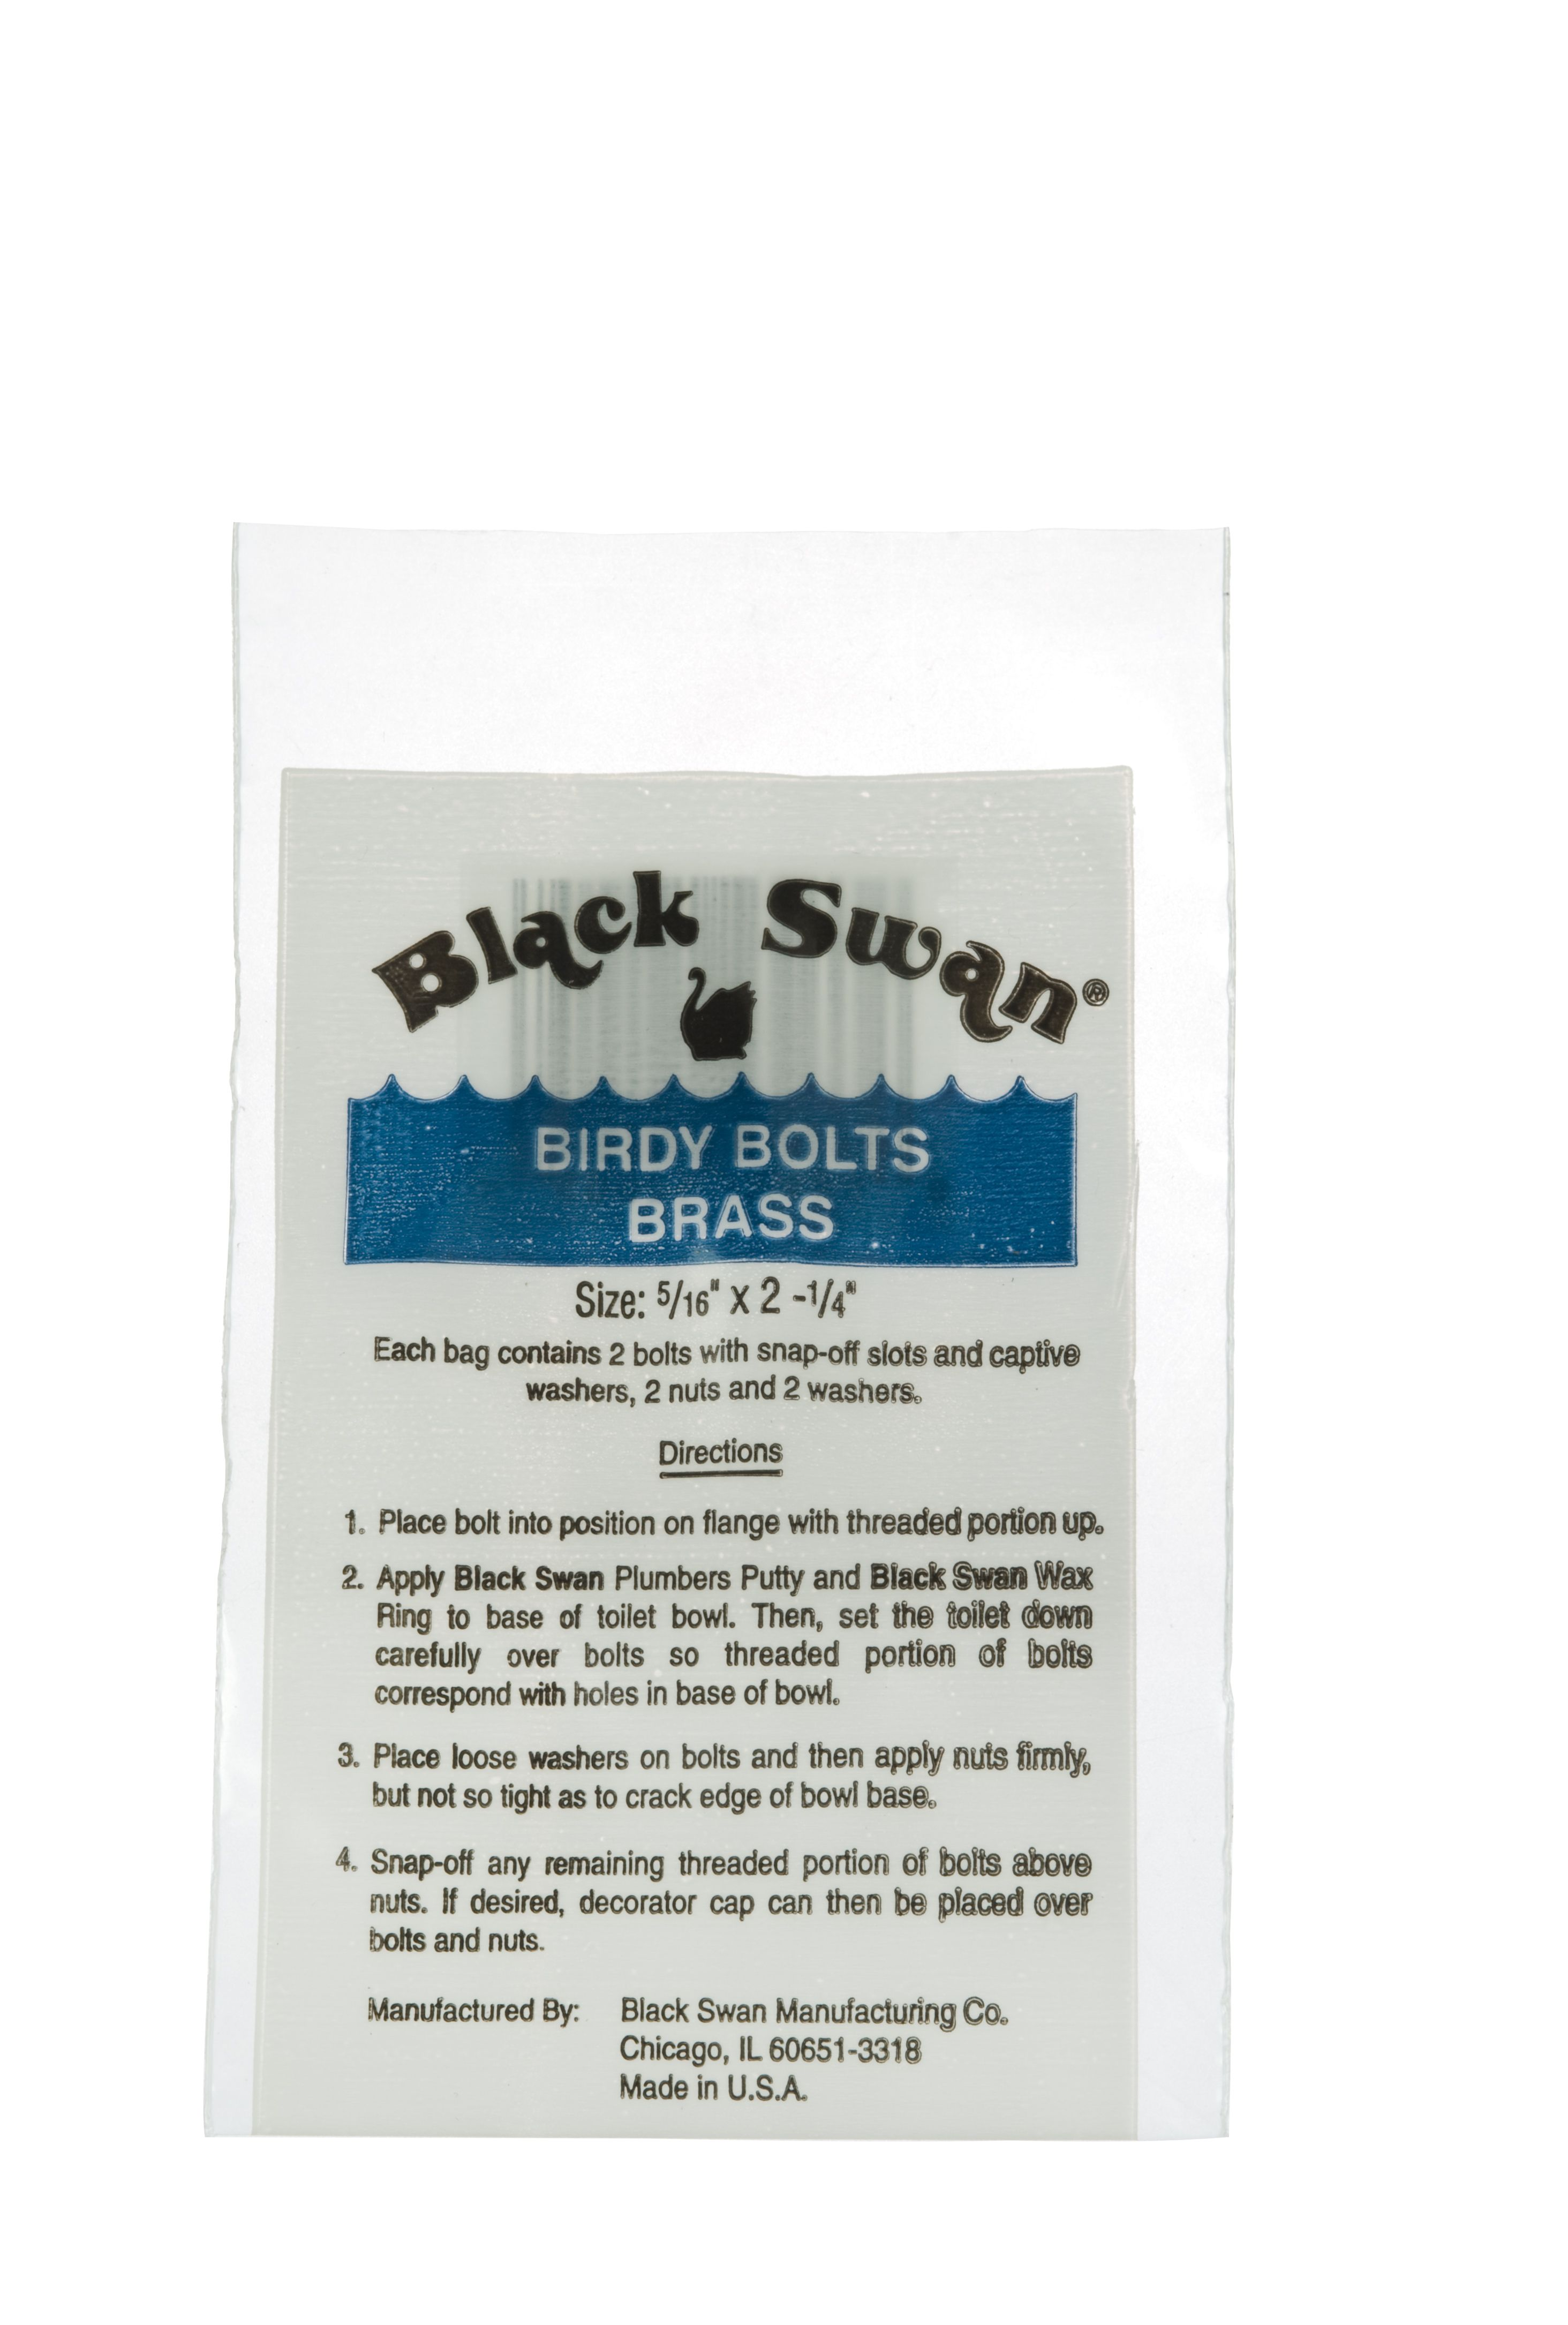 Black Swan Brass Birdy Bolts Are Specially Designed Closet Bolt Designed To Make Installation Of Toilet Bowls Easy Each B Black Swan Toilet Bowl Toilet Bowls